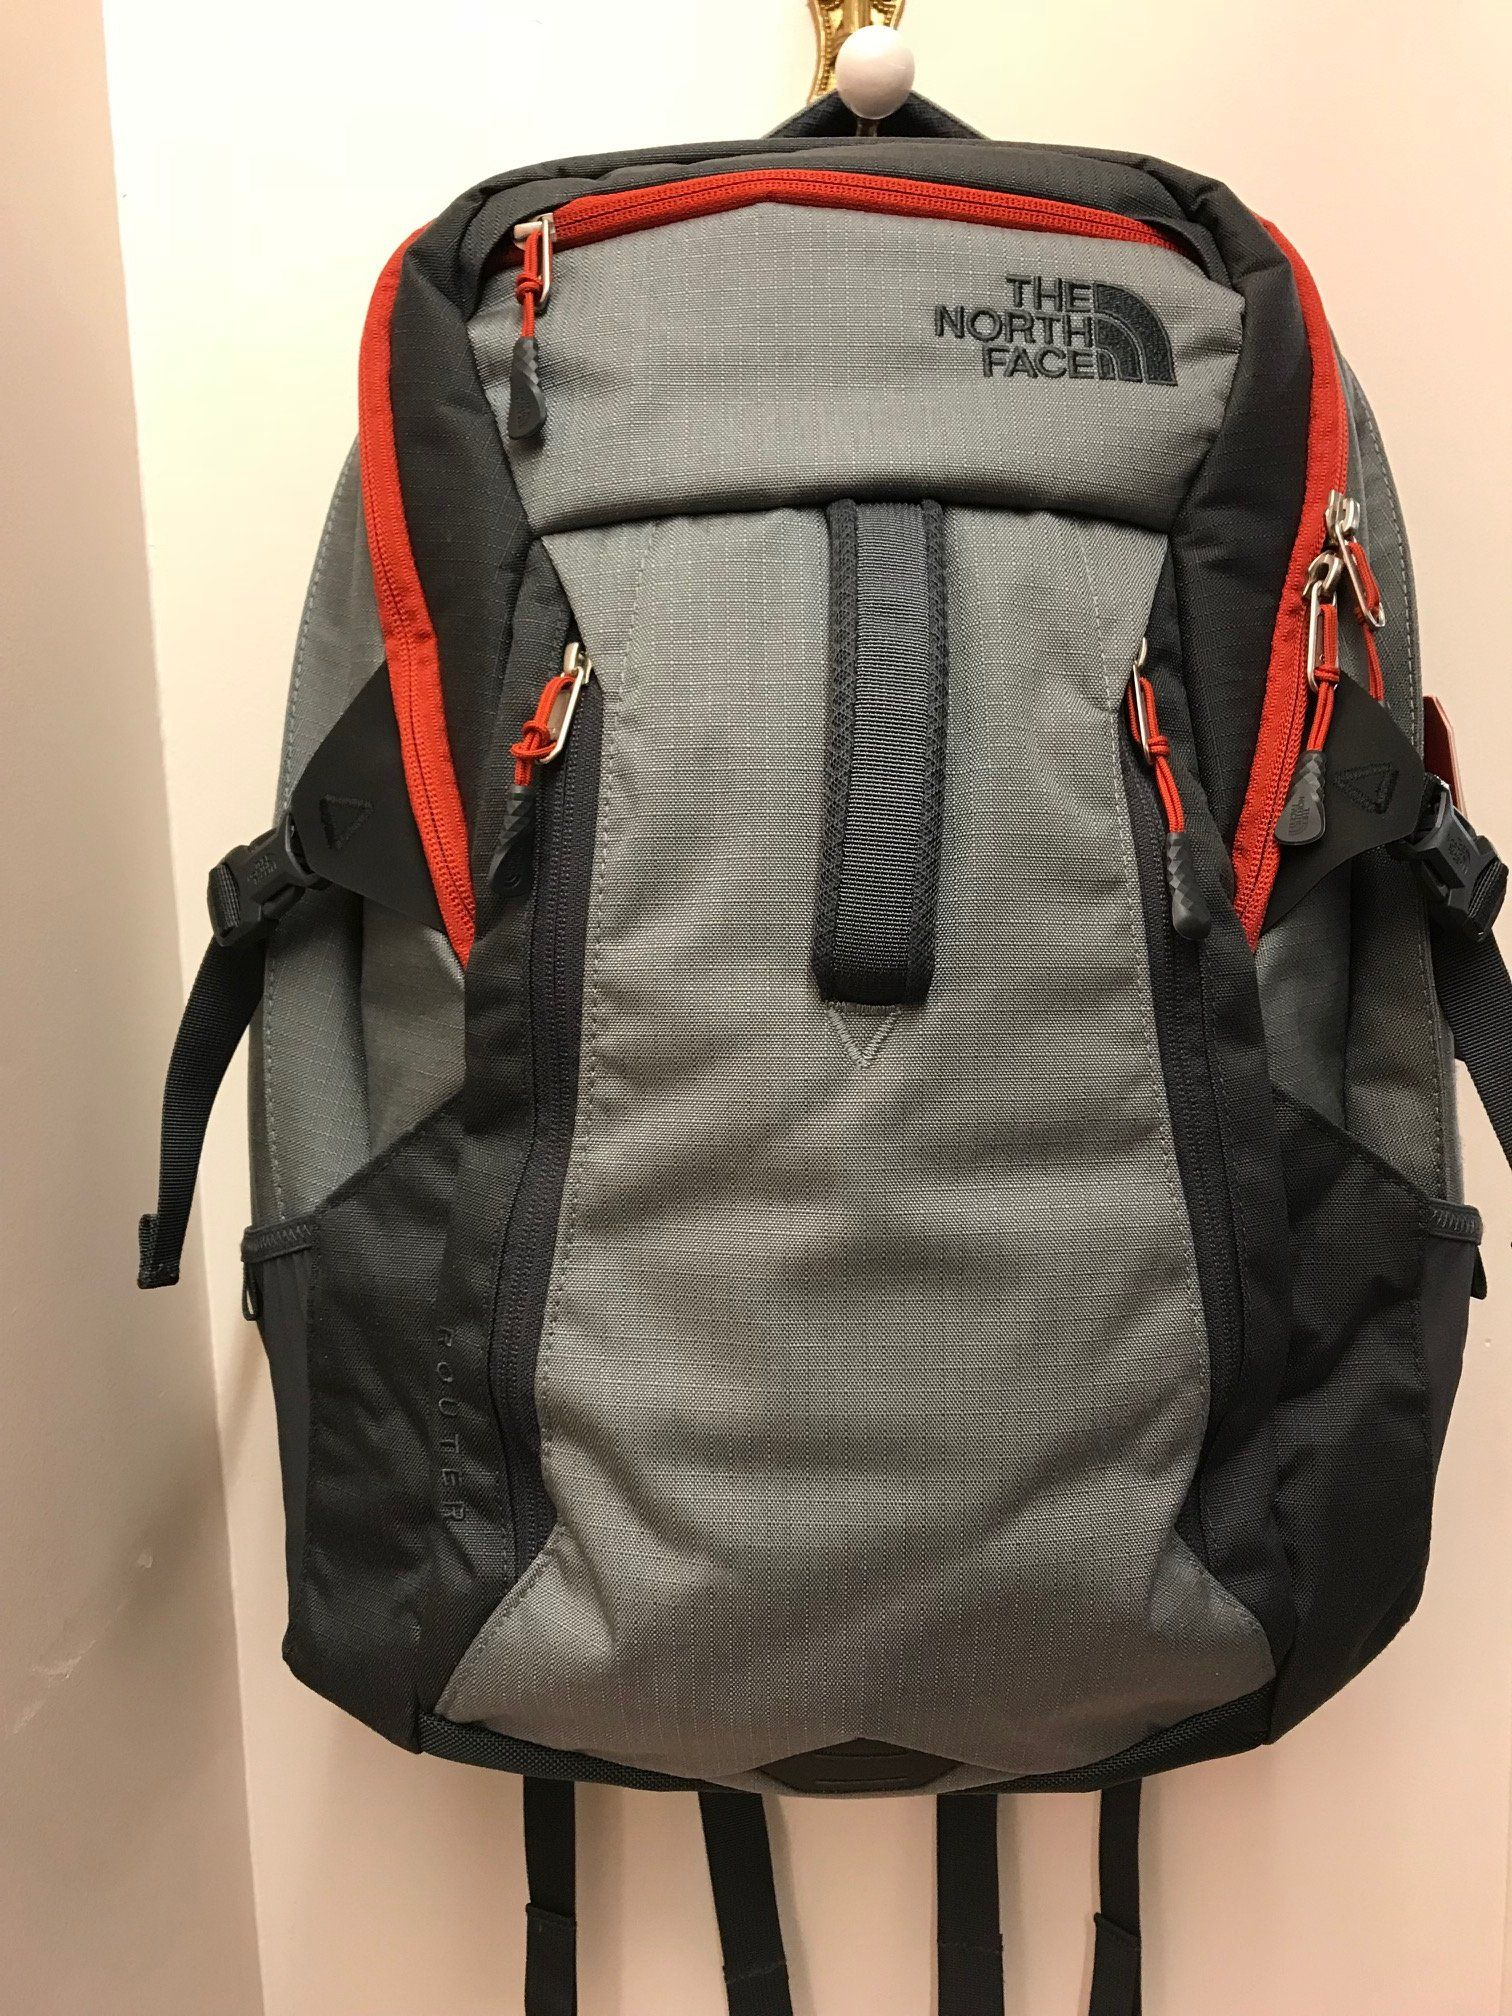 76ccb839e The North Face | Router Backpack | Sedona Sage | Men & Women's ...